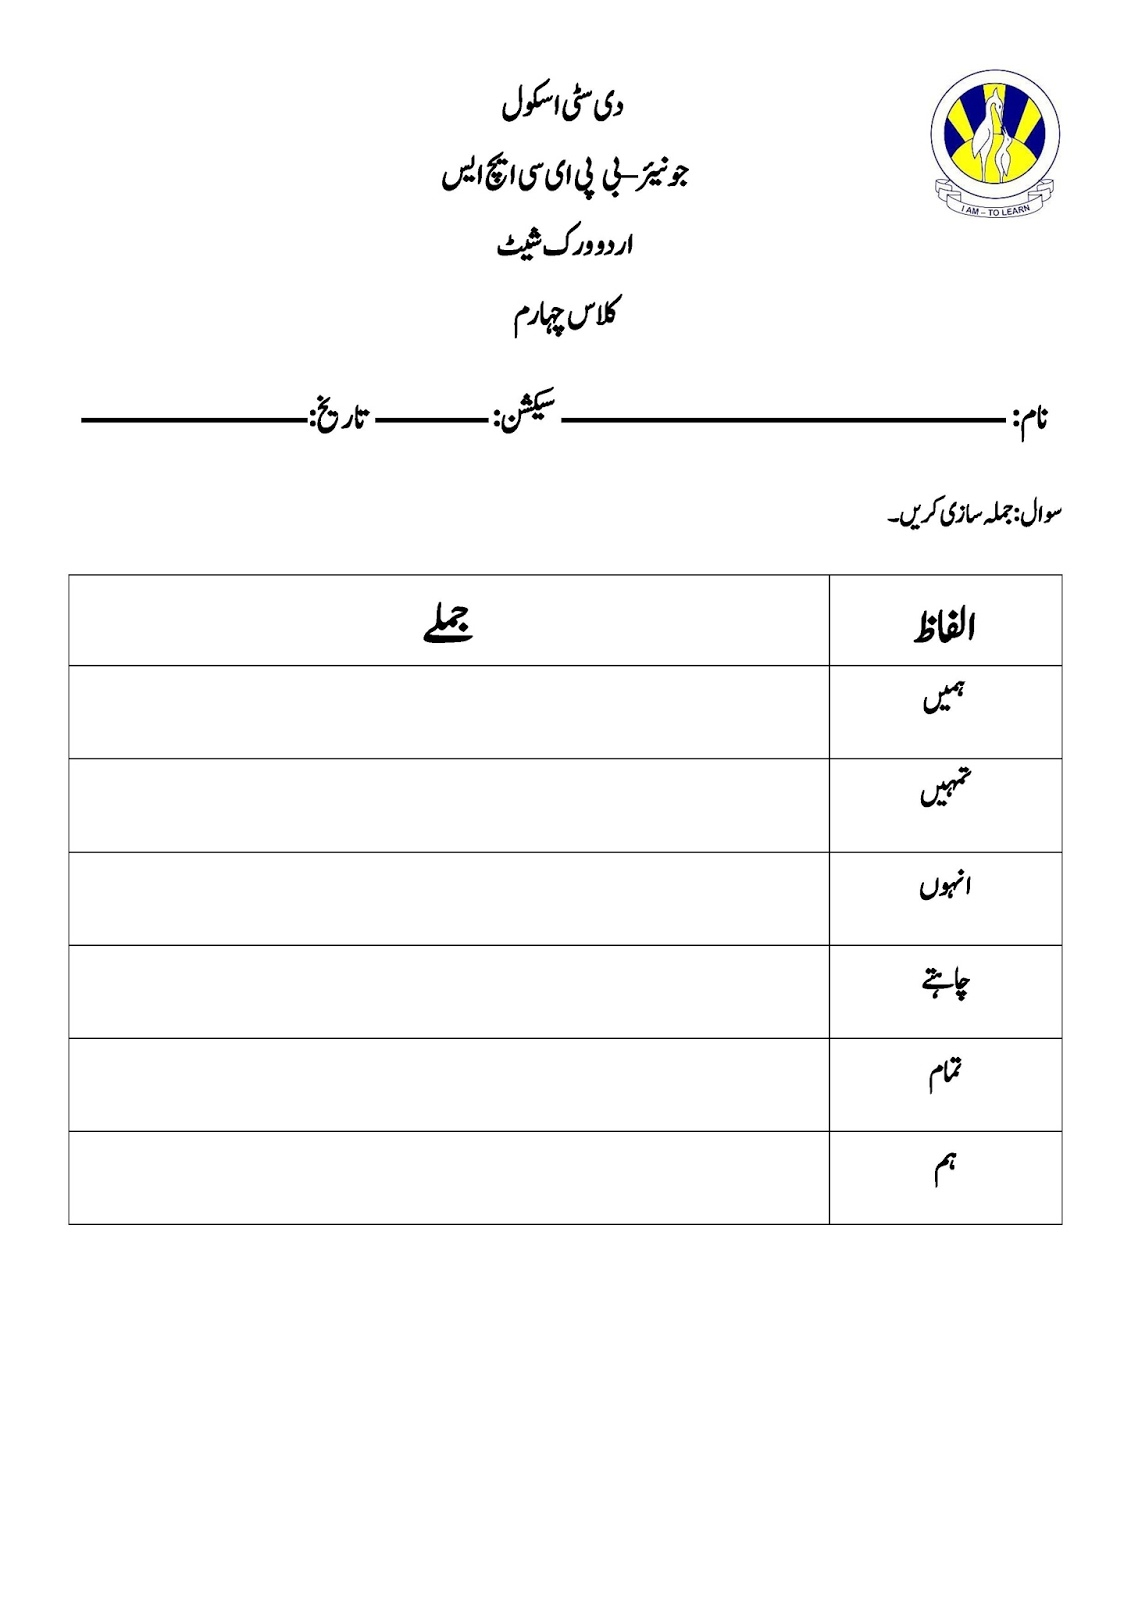 Worksheets One Grade Urdu